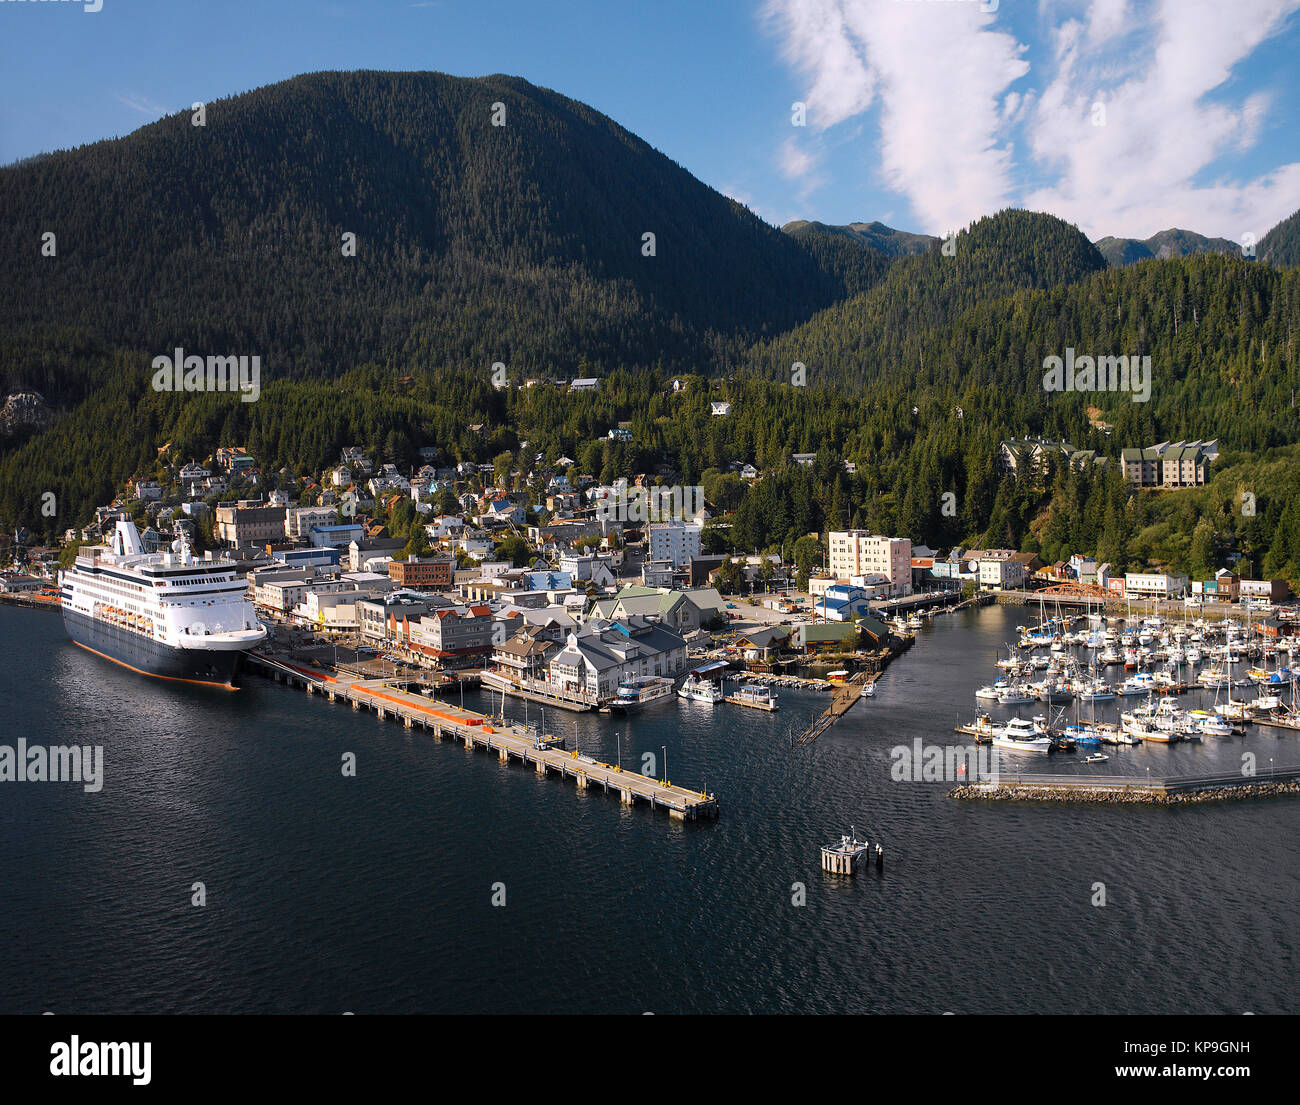 Aerial view of the Port of Ketchikan in Alaska, USA. - Stock Image